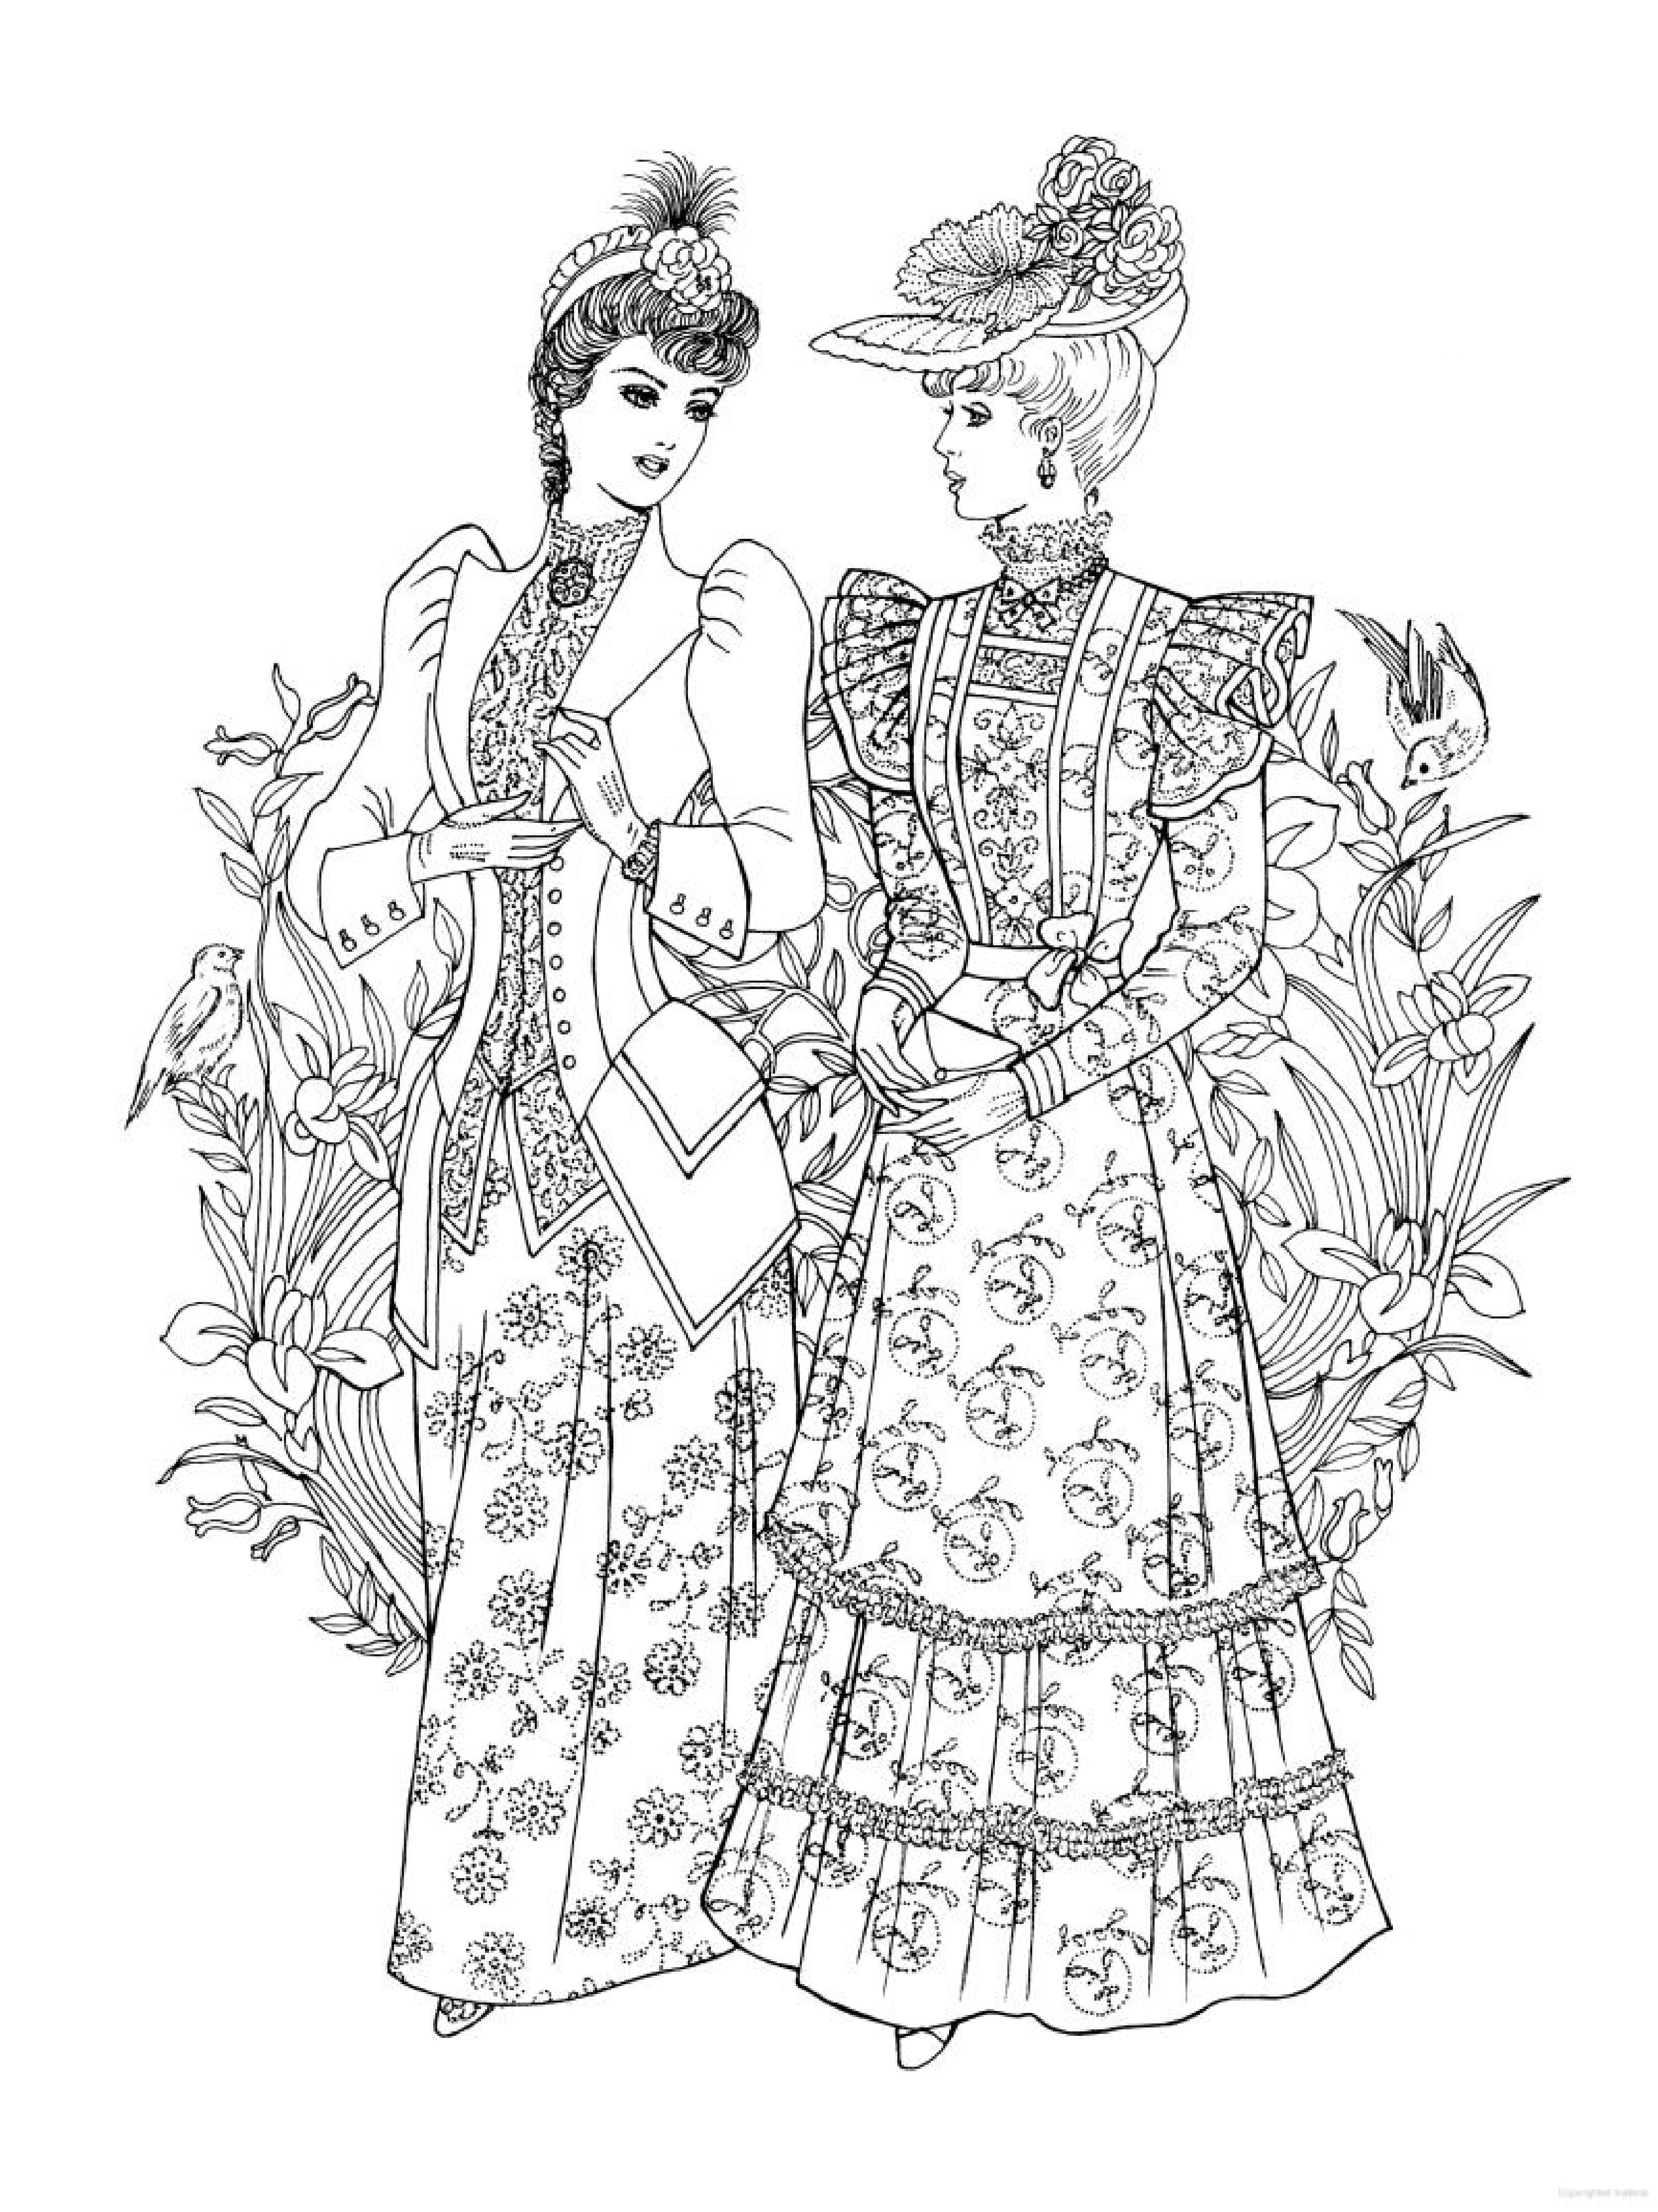 creative haven art nouveau fashions coloring book historical